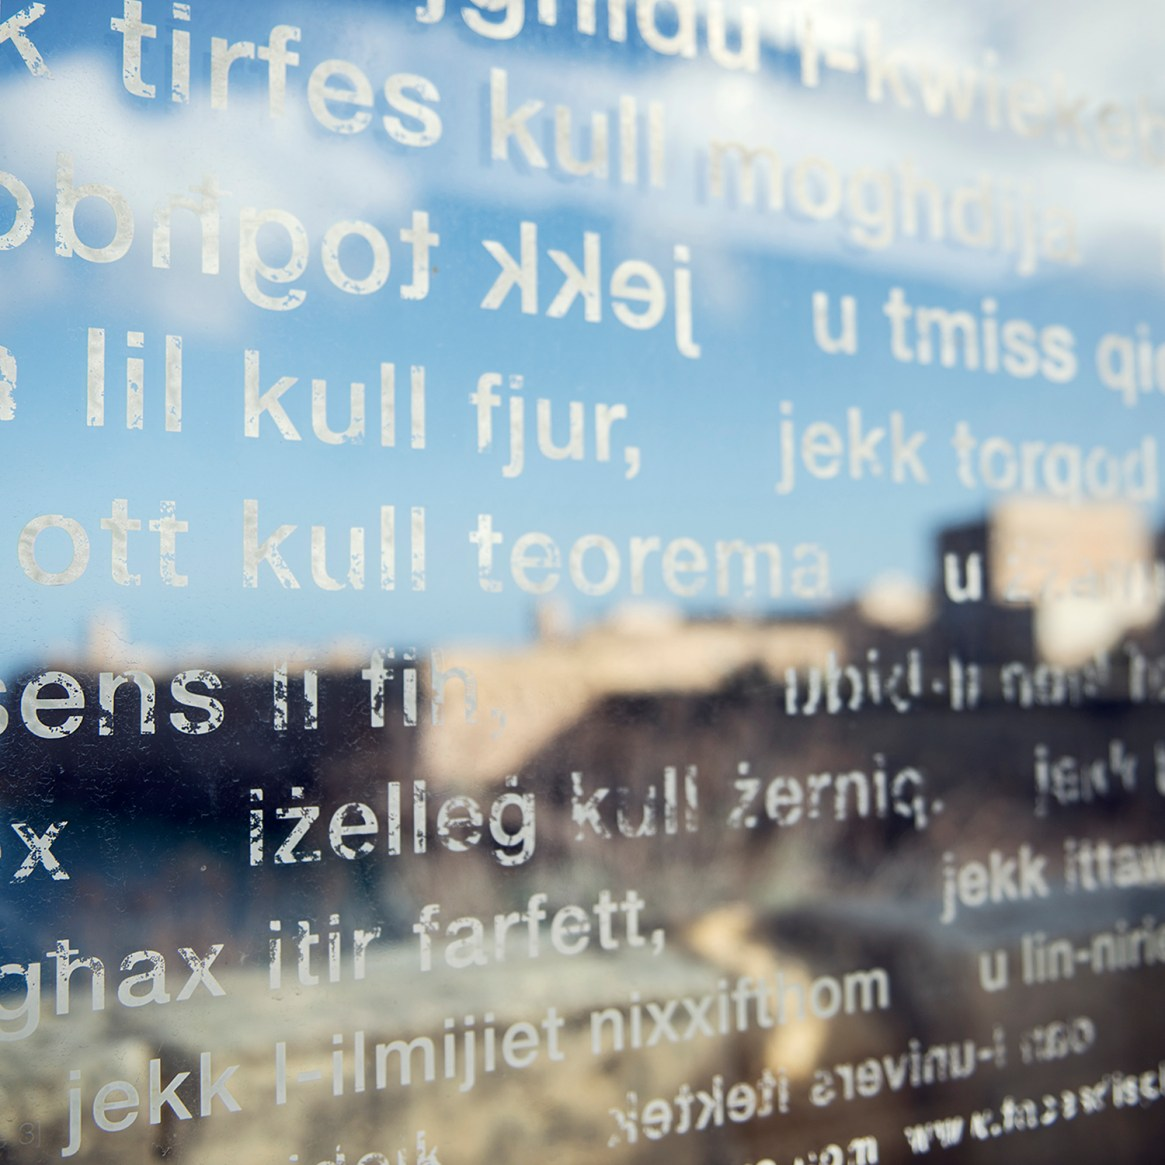 Malta old town seen through a pane of glass with text